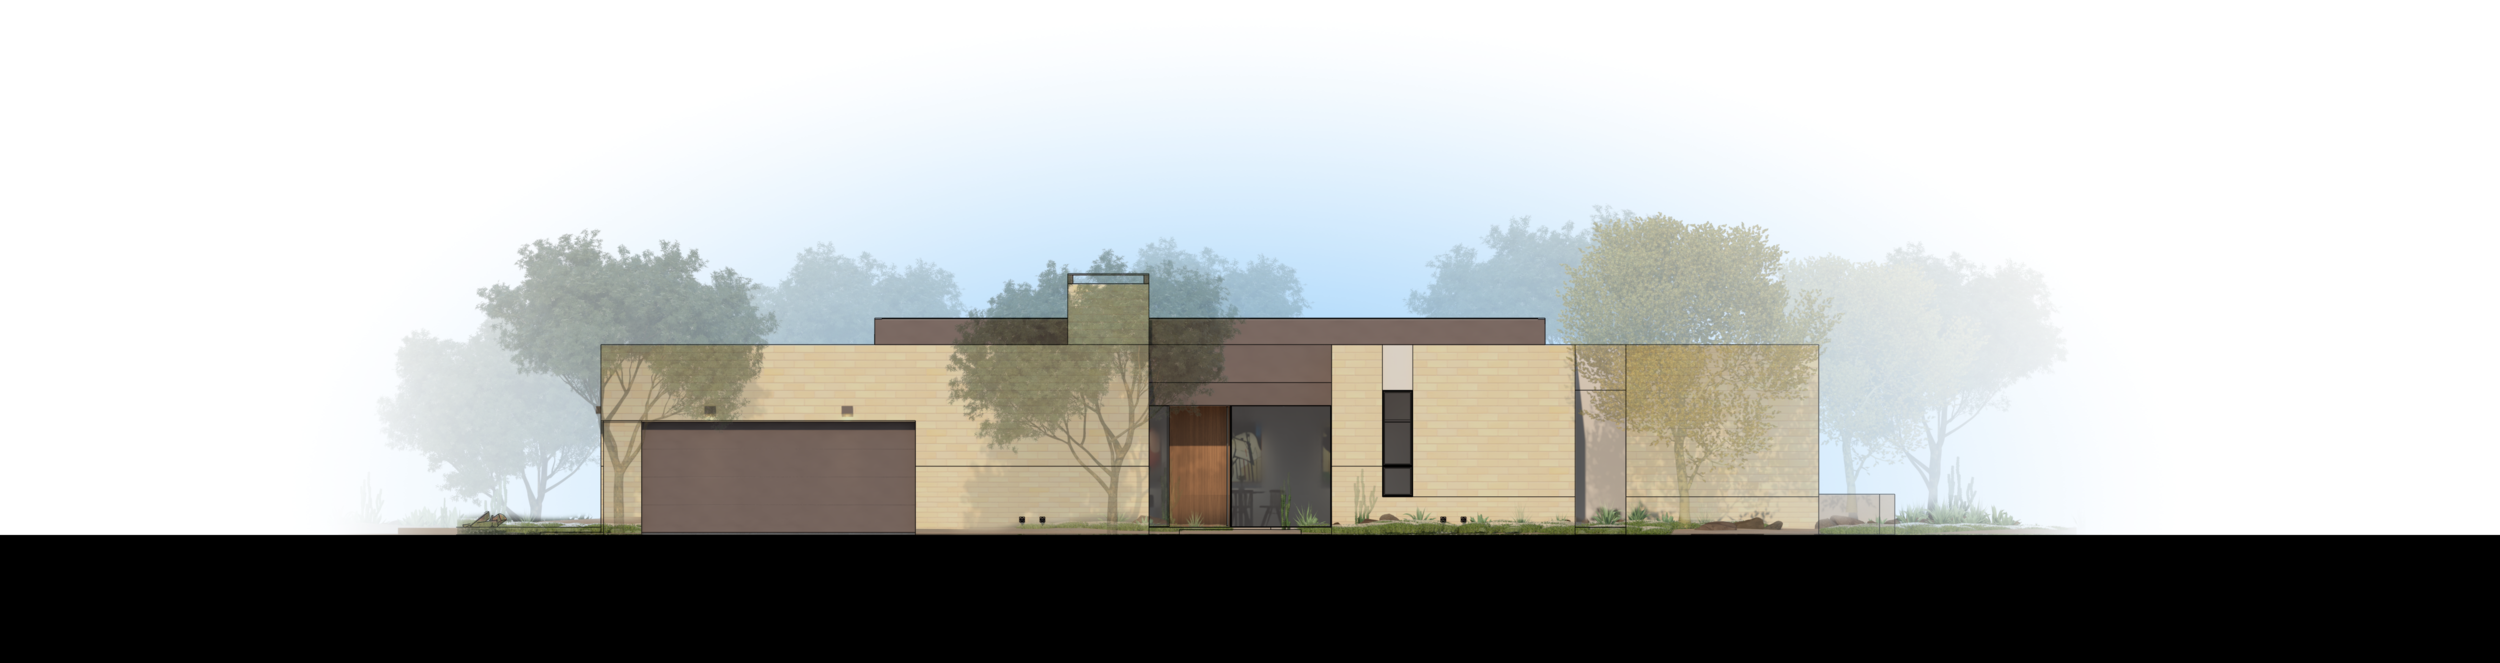 Palo Verde Lane Rendered Elevation 4